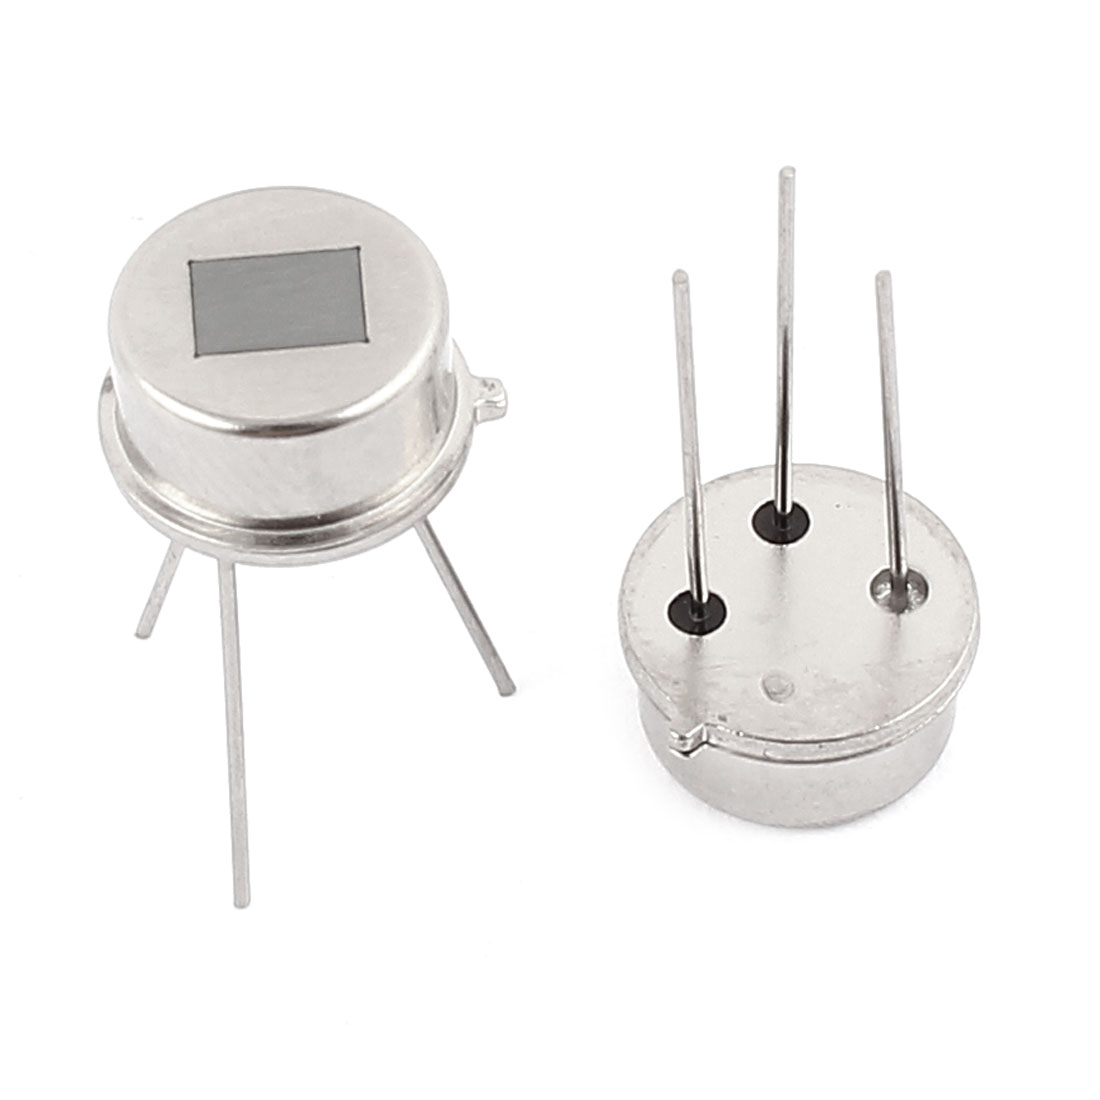 2 Pcs D203S Pyroelectric Infrared Radial Sensor Human Body Motion Detector